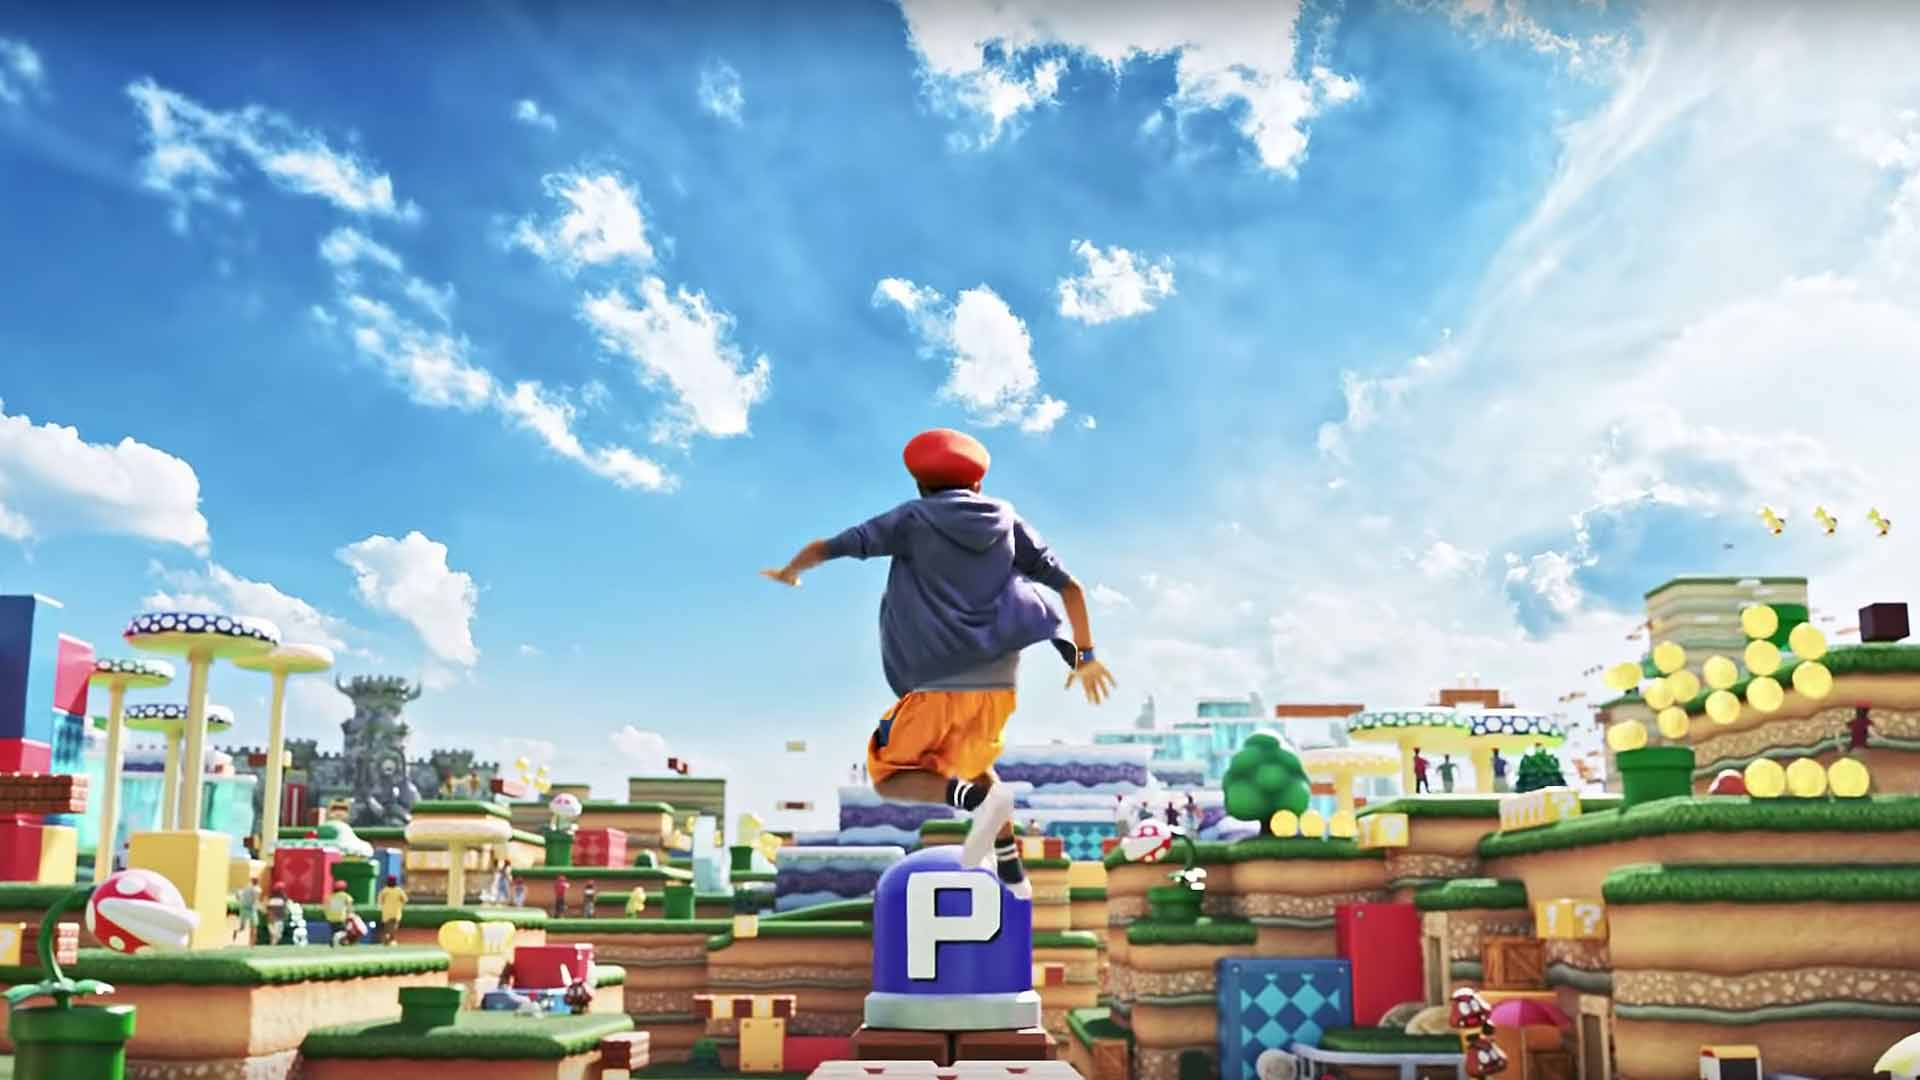 Japan's Multi-Level Super Nintendo Theme Park Is Set to Open This Year with a 'Mario Kart' Ride